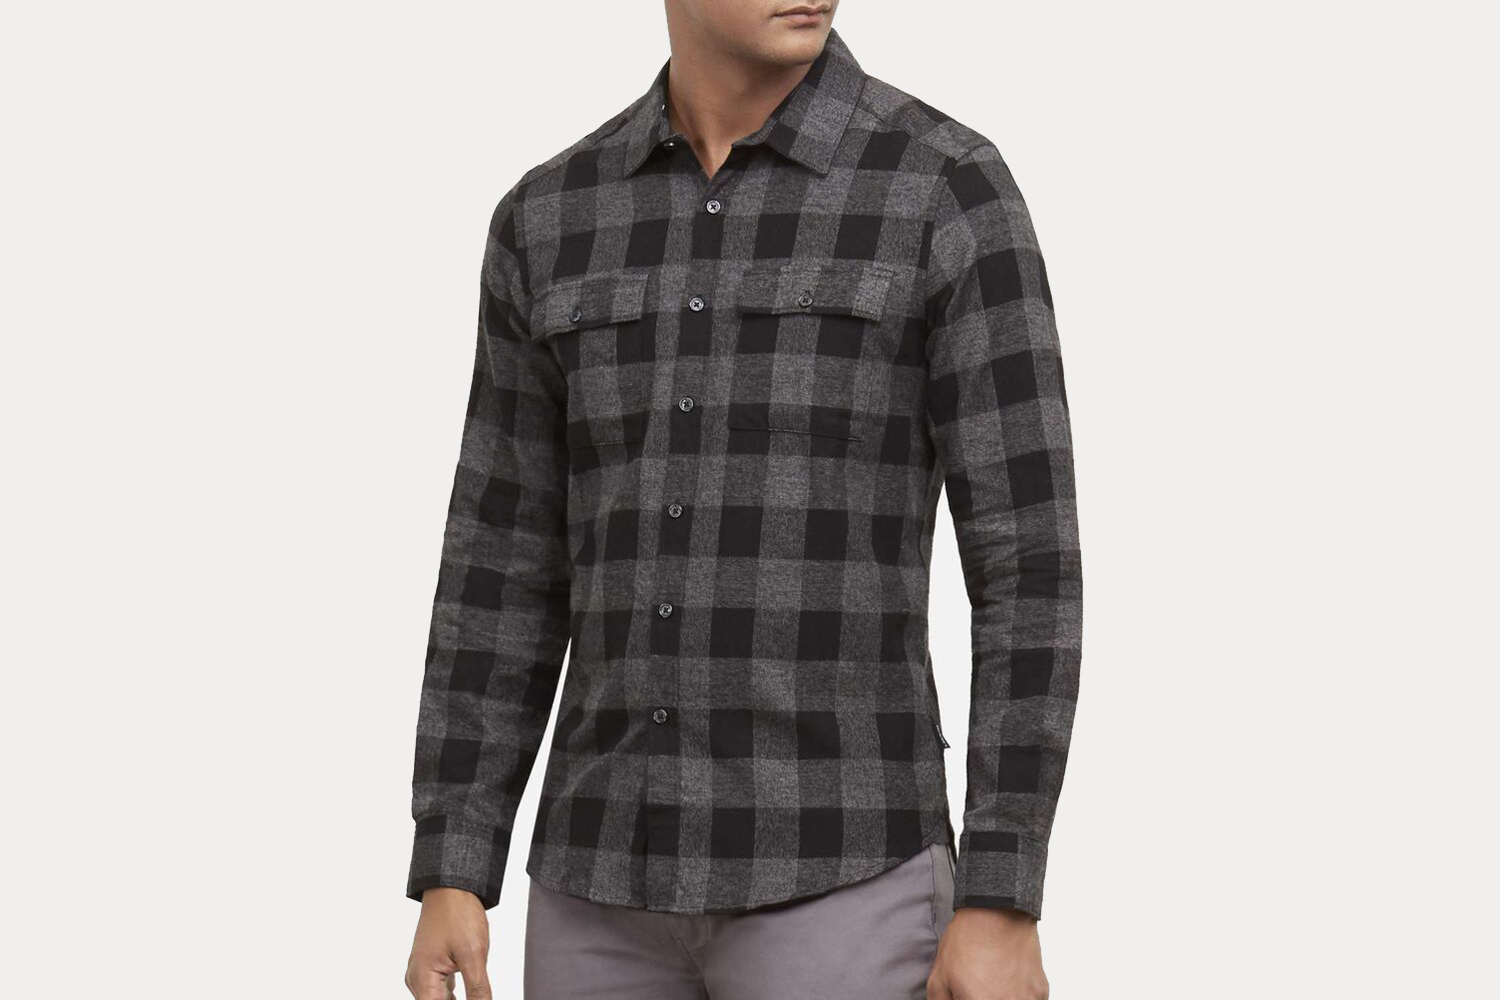 Kenneth Cole flannel shirt